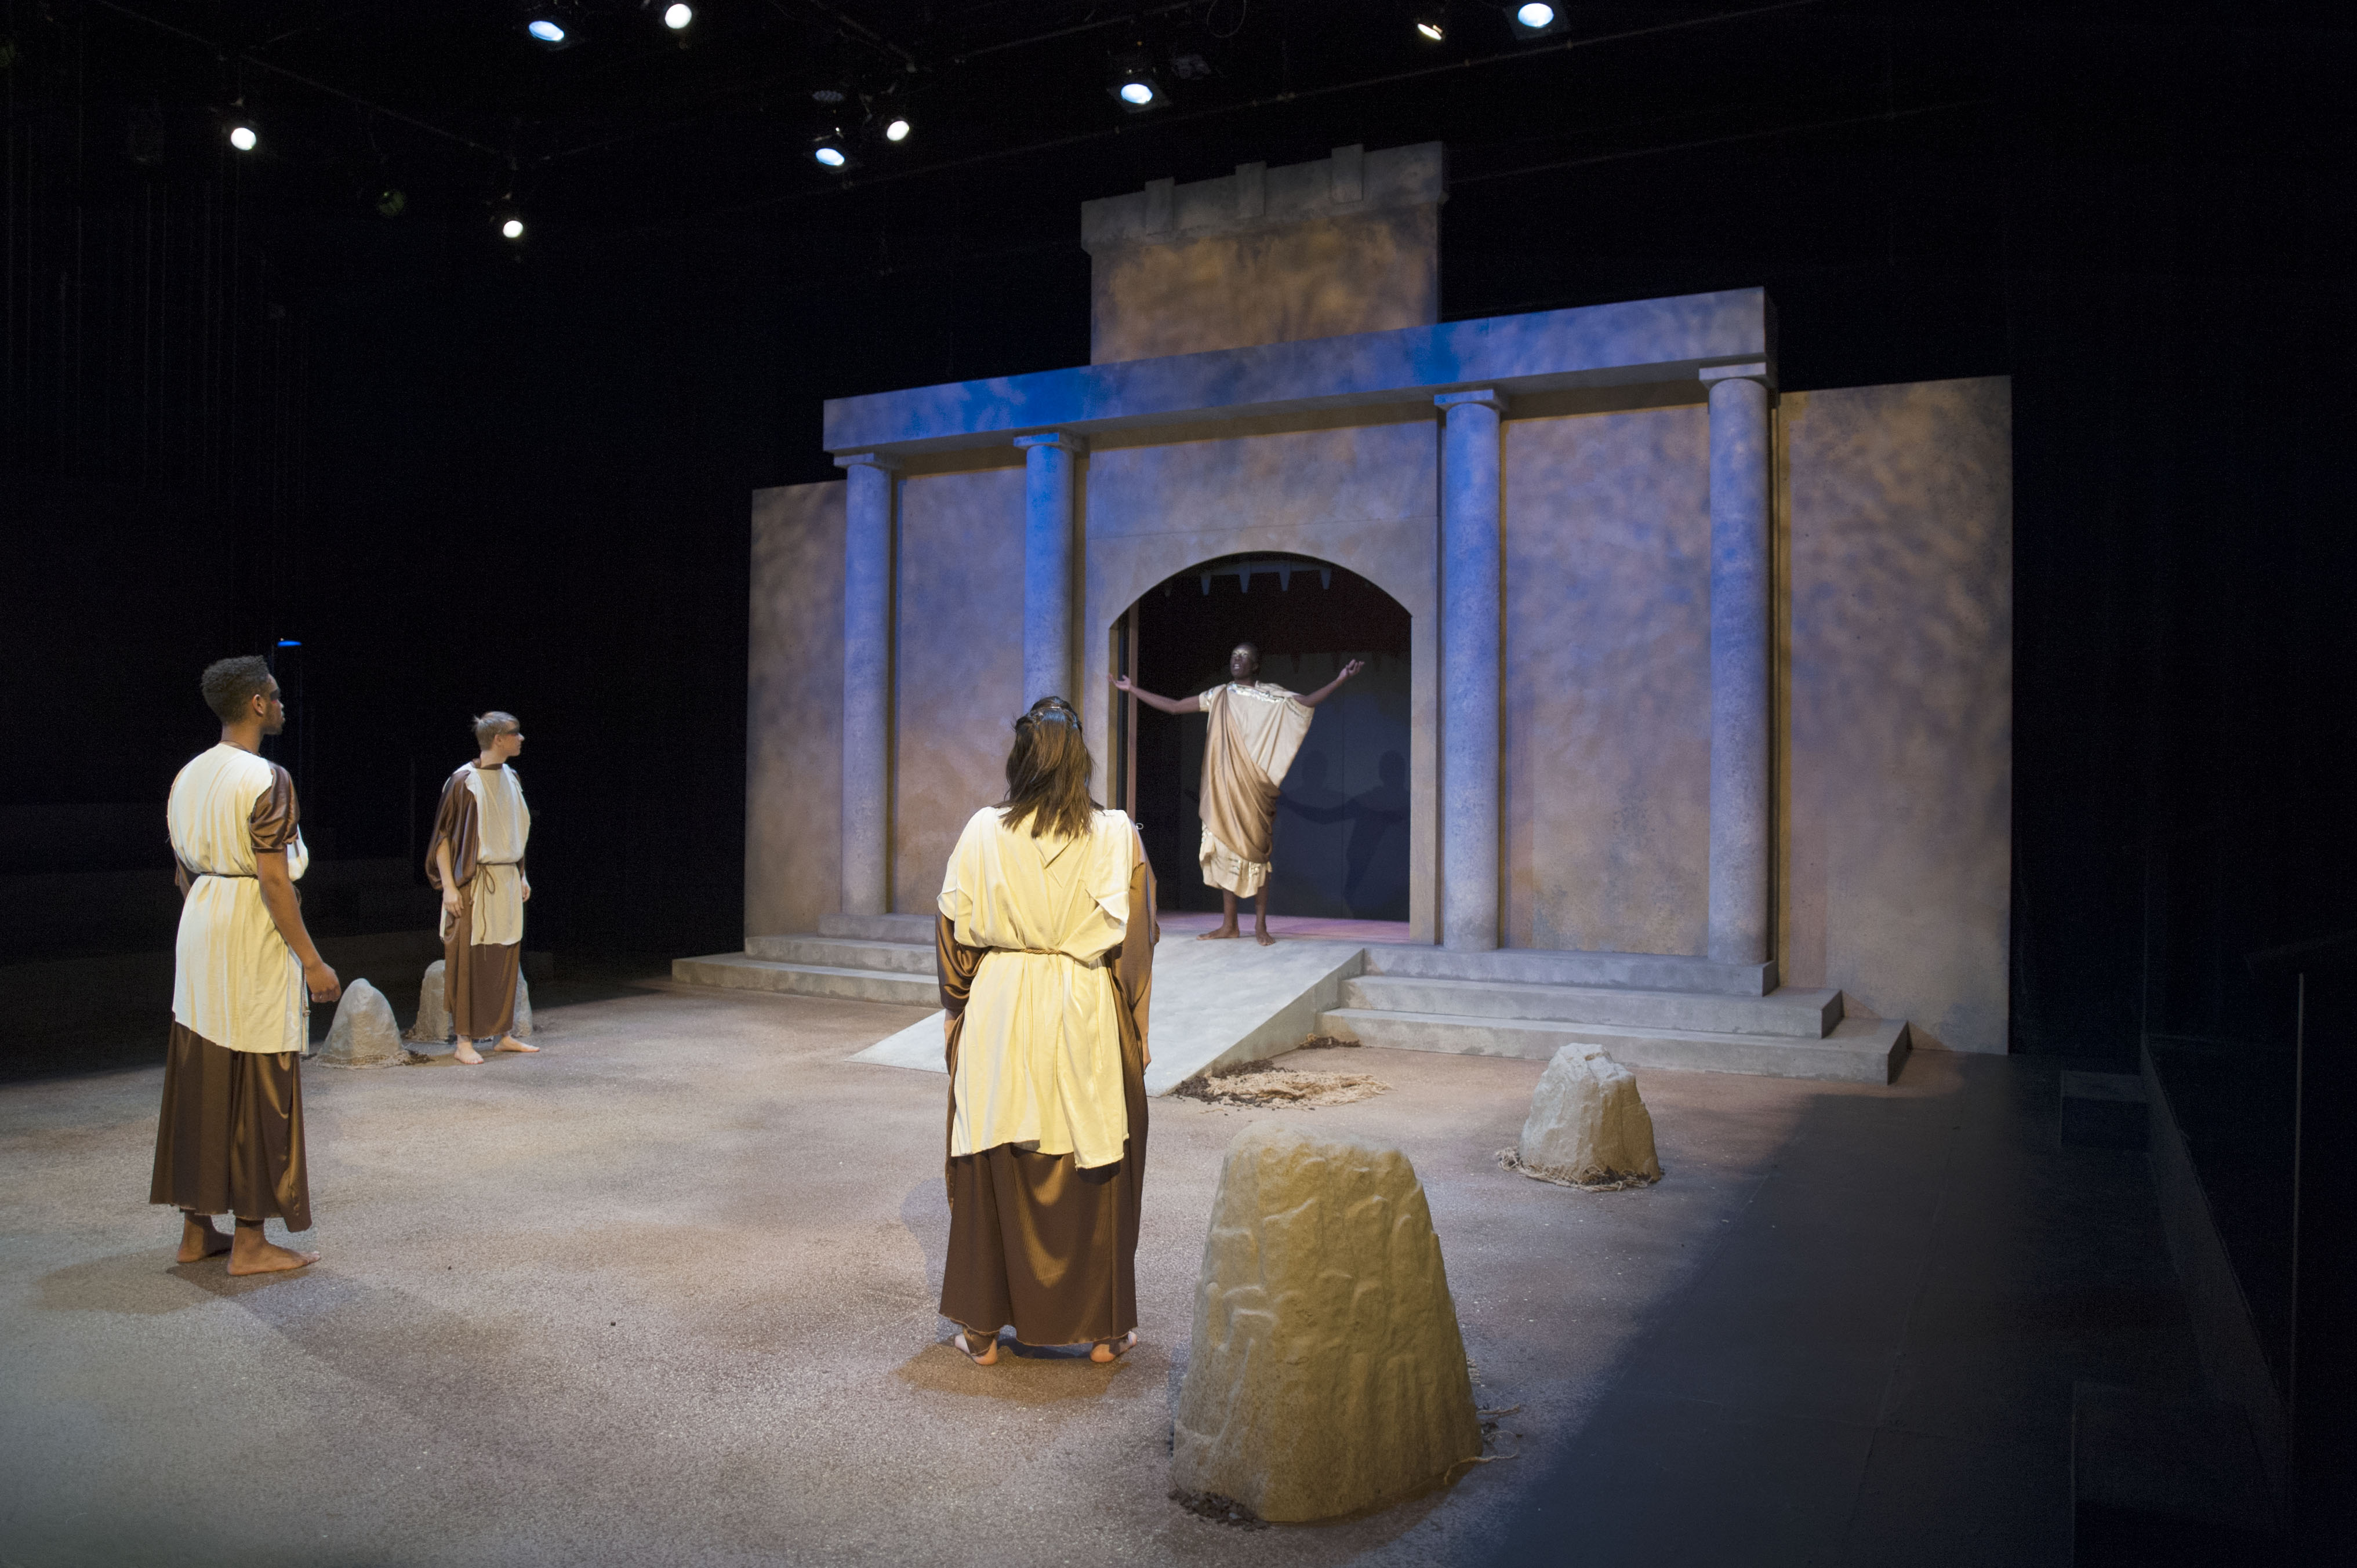 debate between creon and antigone and polynices body properly buried Antigone asks her sister to help her bury their brother properly, but ismene refuses, and antigone does it by herself  creon raised antigone, ismene, polynices .